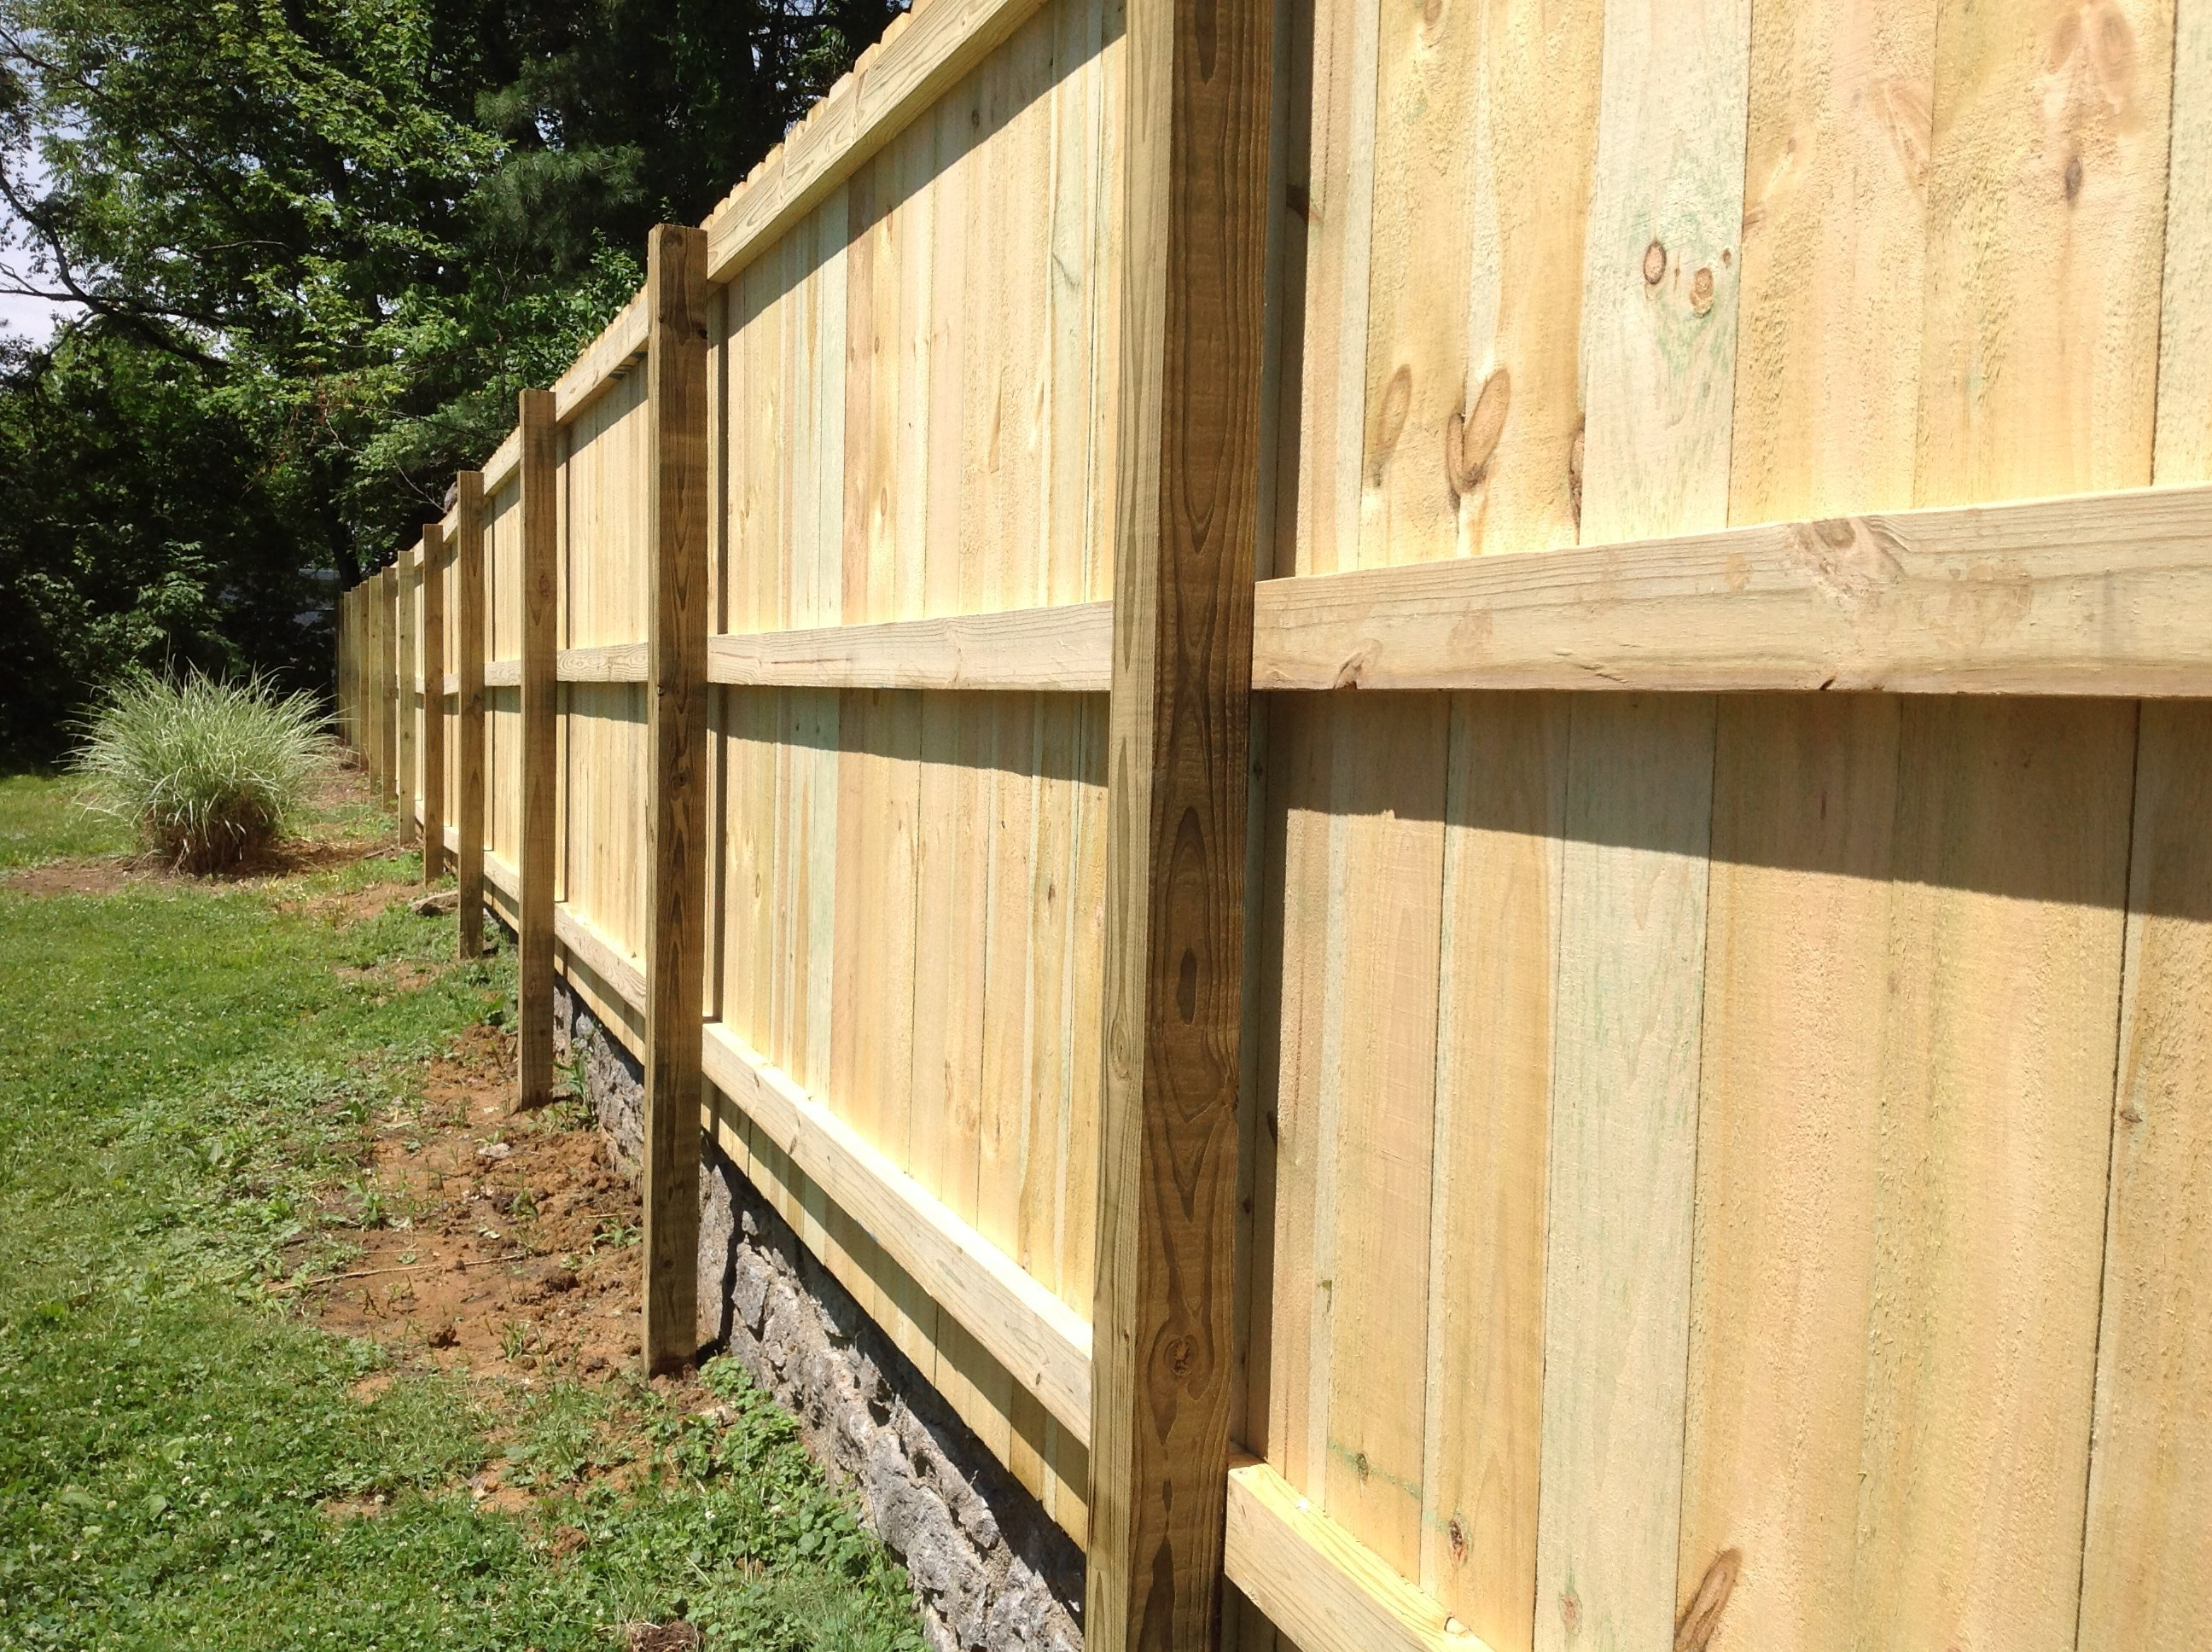 Unusual Retaining Wall Fence Ideas Images - The Wall Art Decorations ...